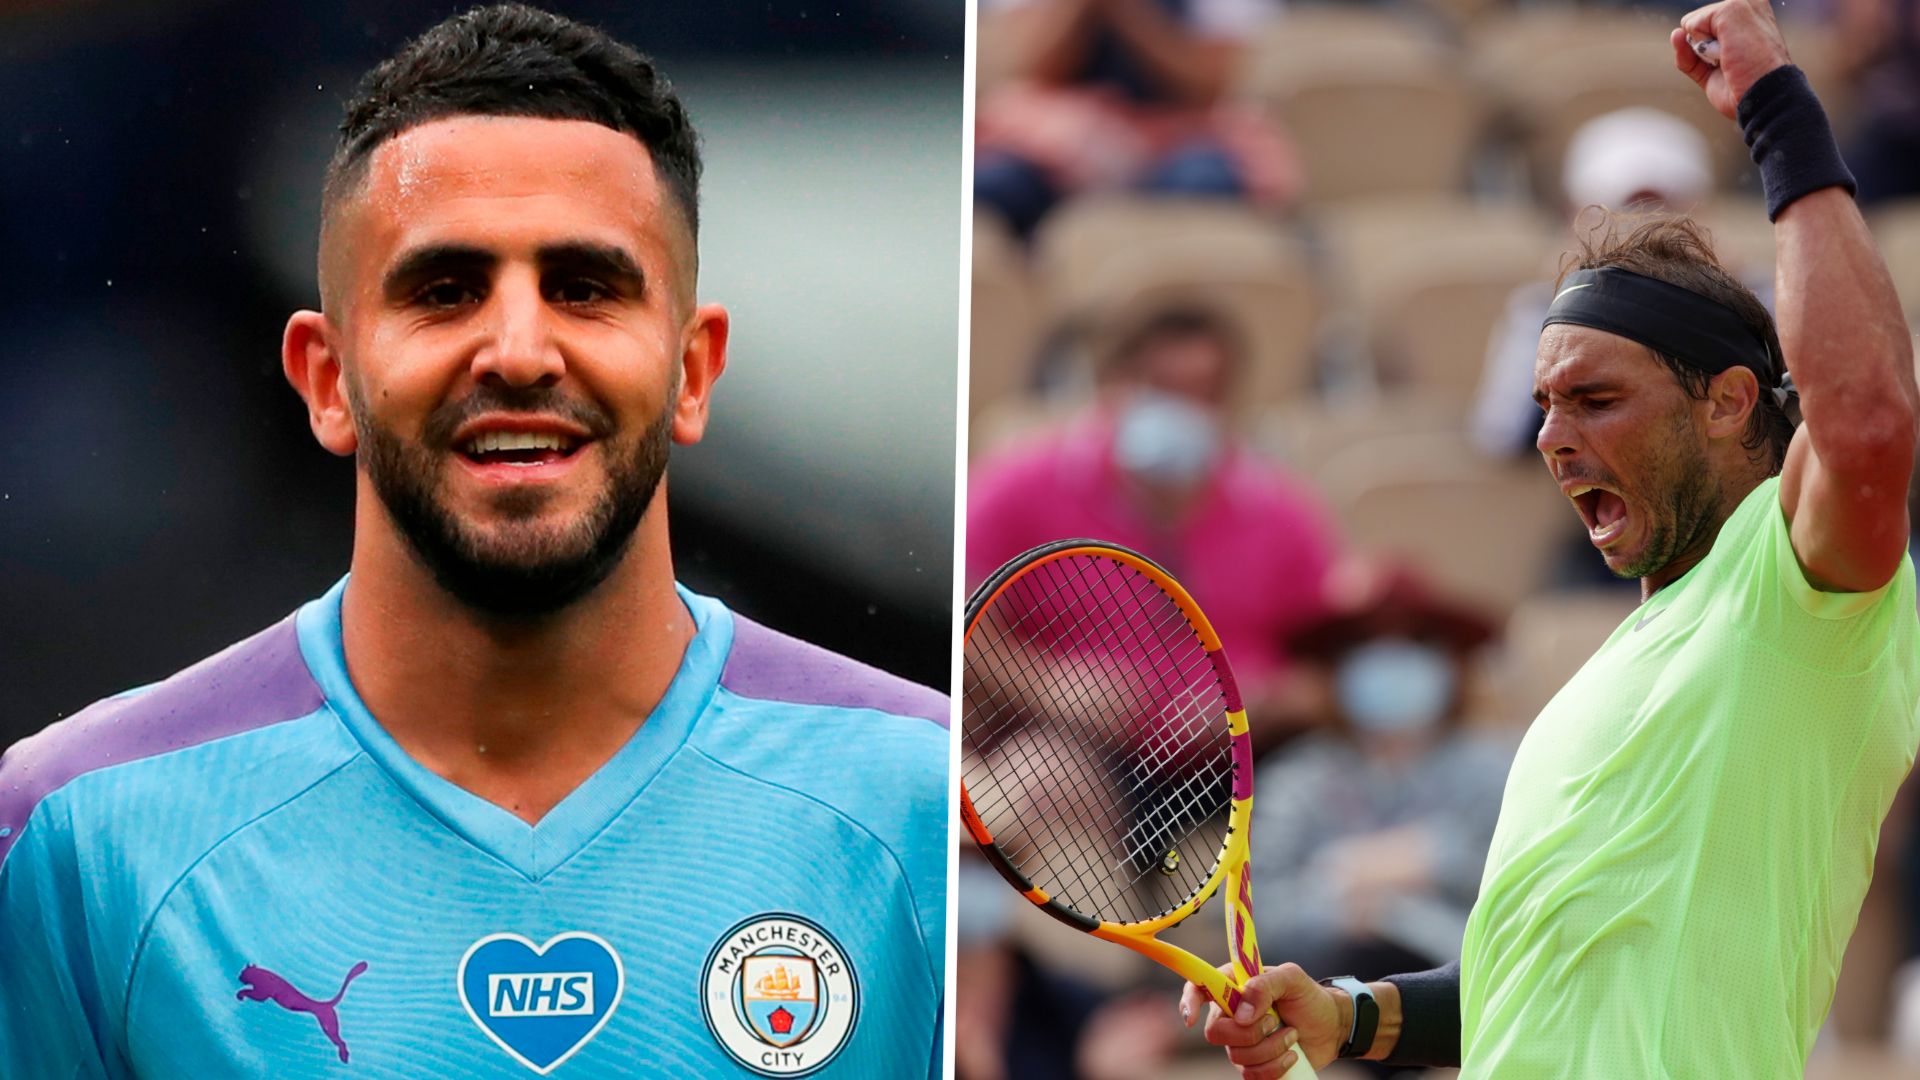 'When you win, you have to try to win again' - Man City star Mahrez reveals Nadal inspiration